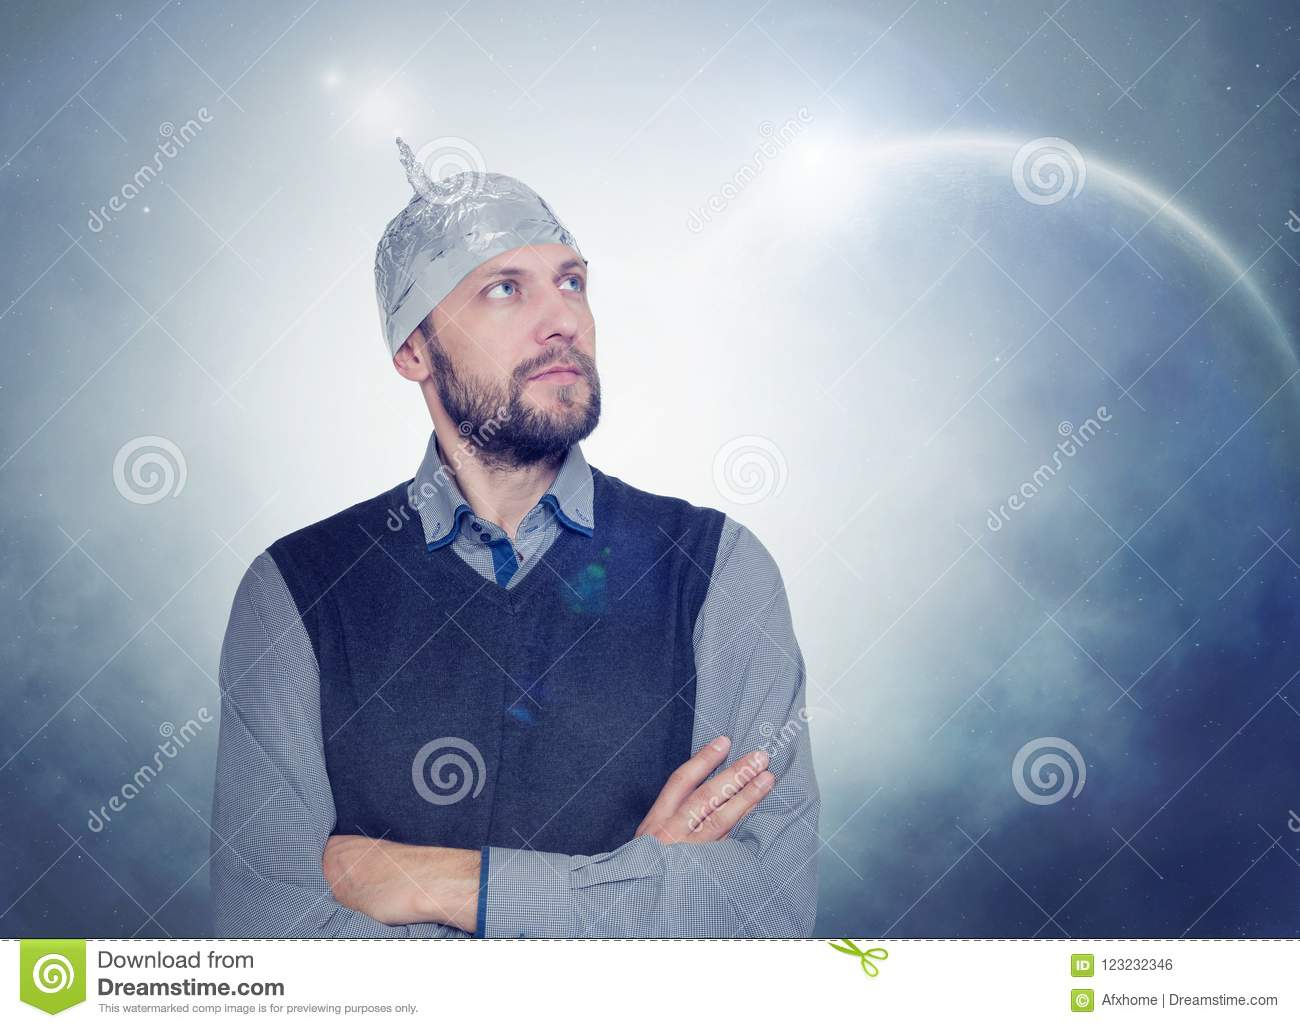 33acd5f1863 Bearded funny man in a cap of aluminum foil. Concept of cosmic fantasies.